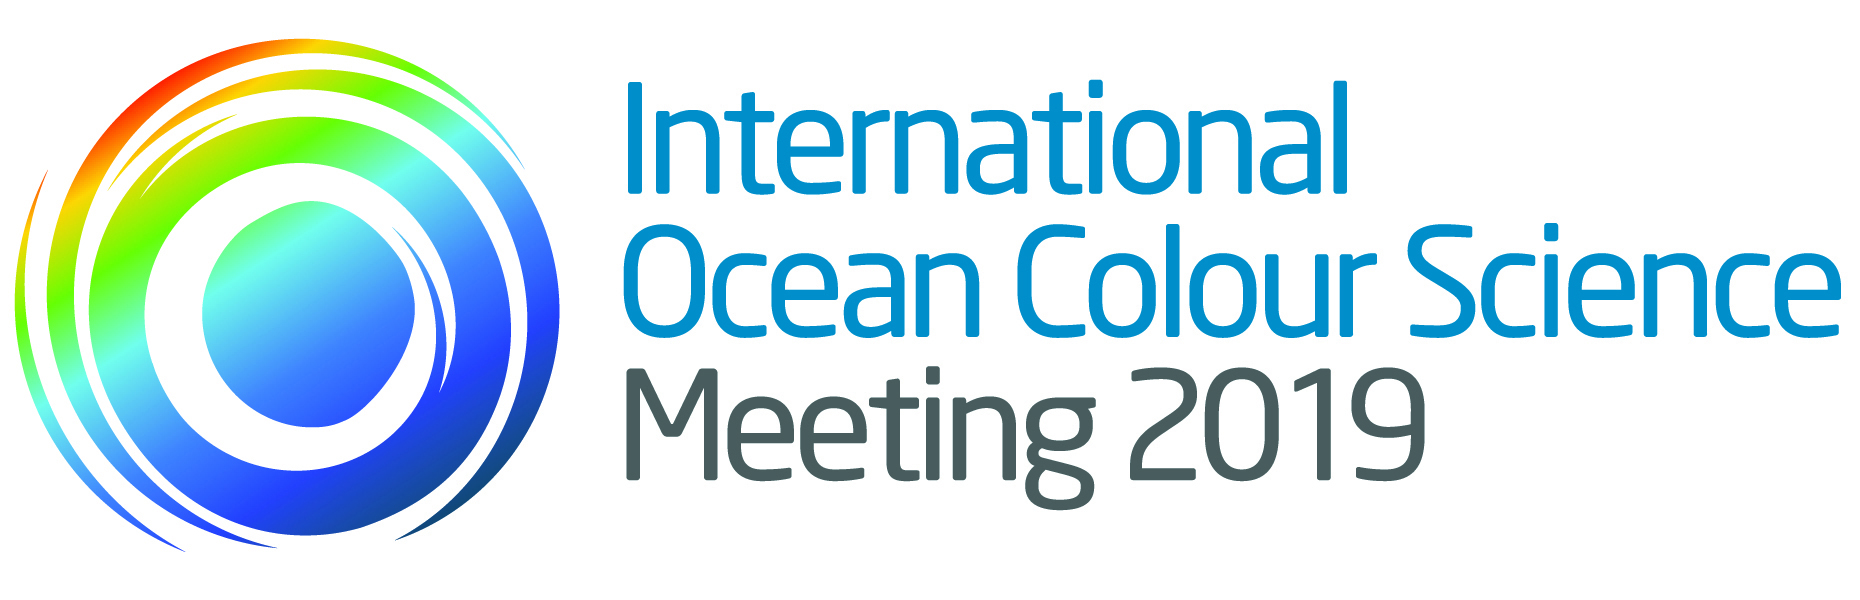 4327846705e Registration for the 2019 International Ocean Colour Science meeting  (IOCS-2019) is now open. Register early to take advantage of the heavily  discounted ...